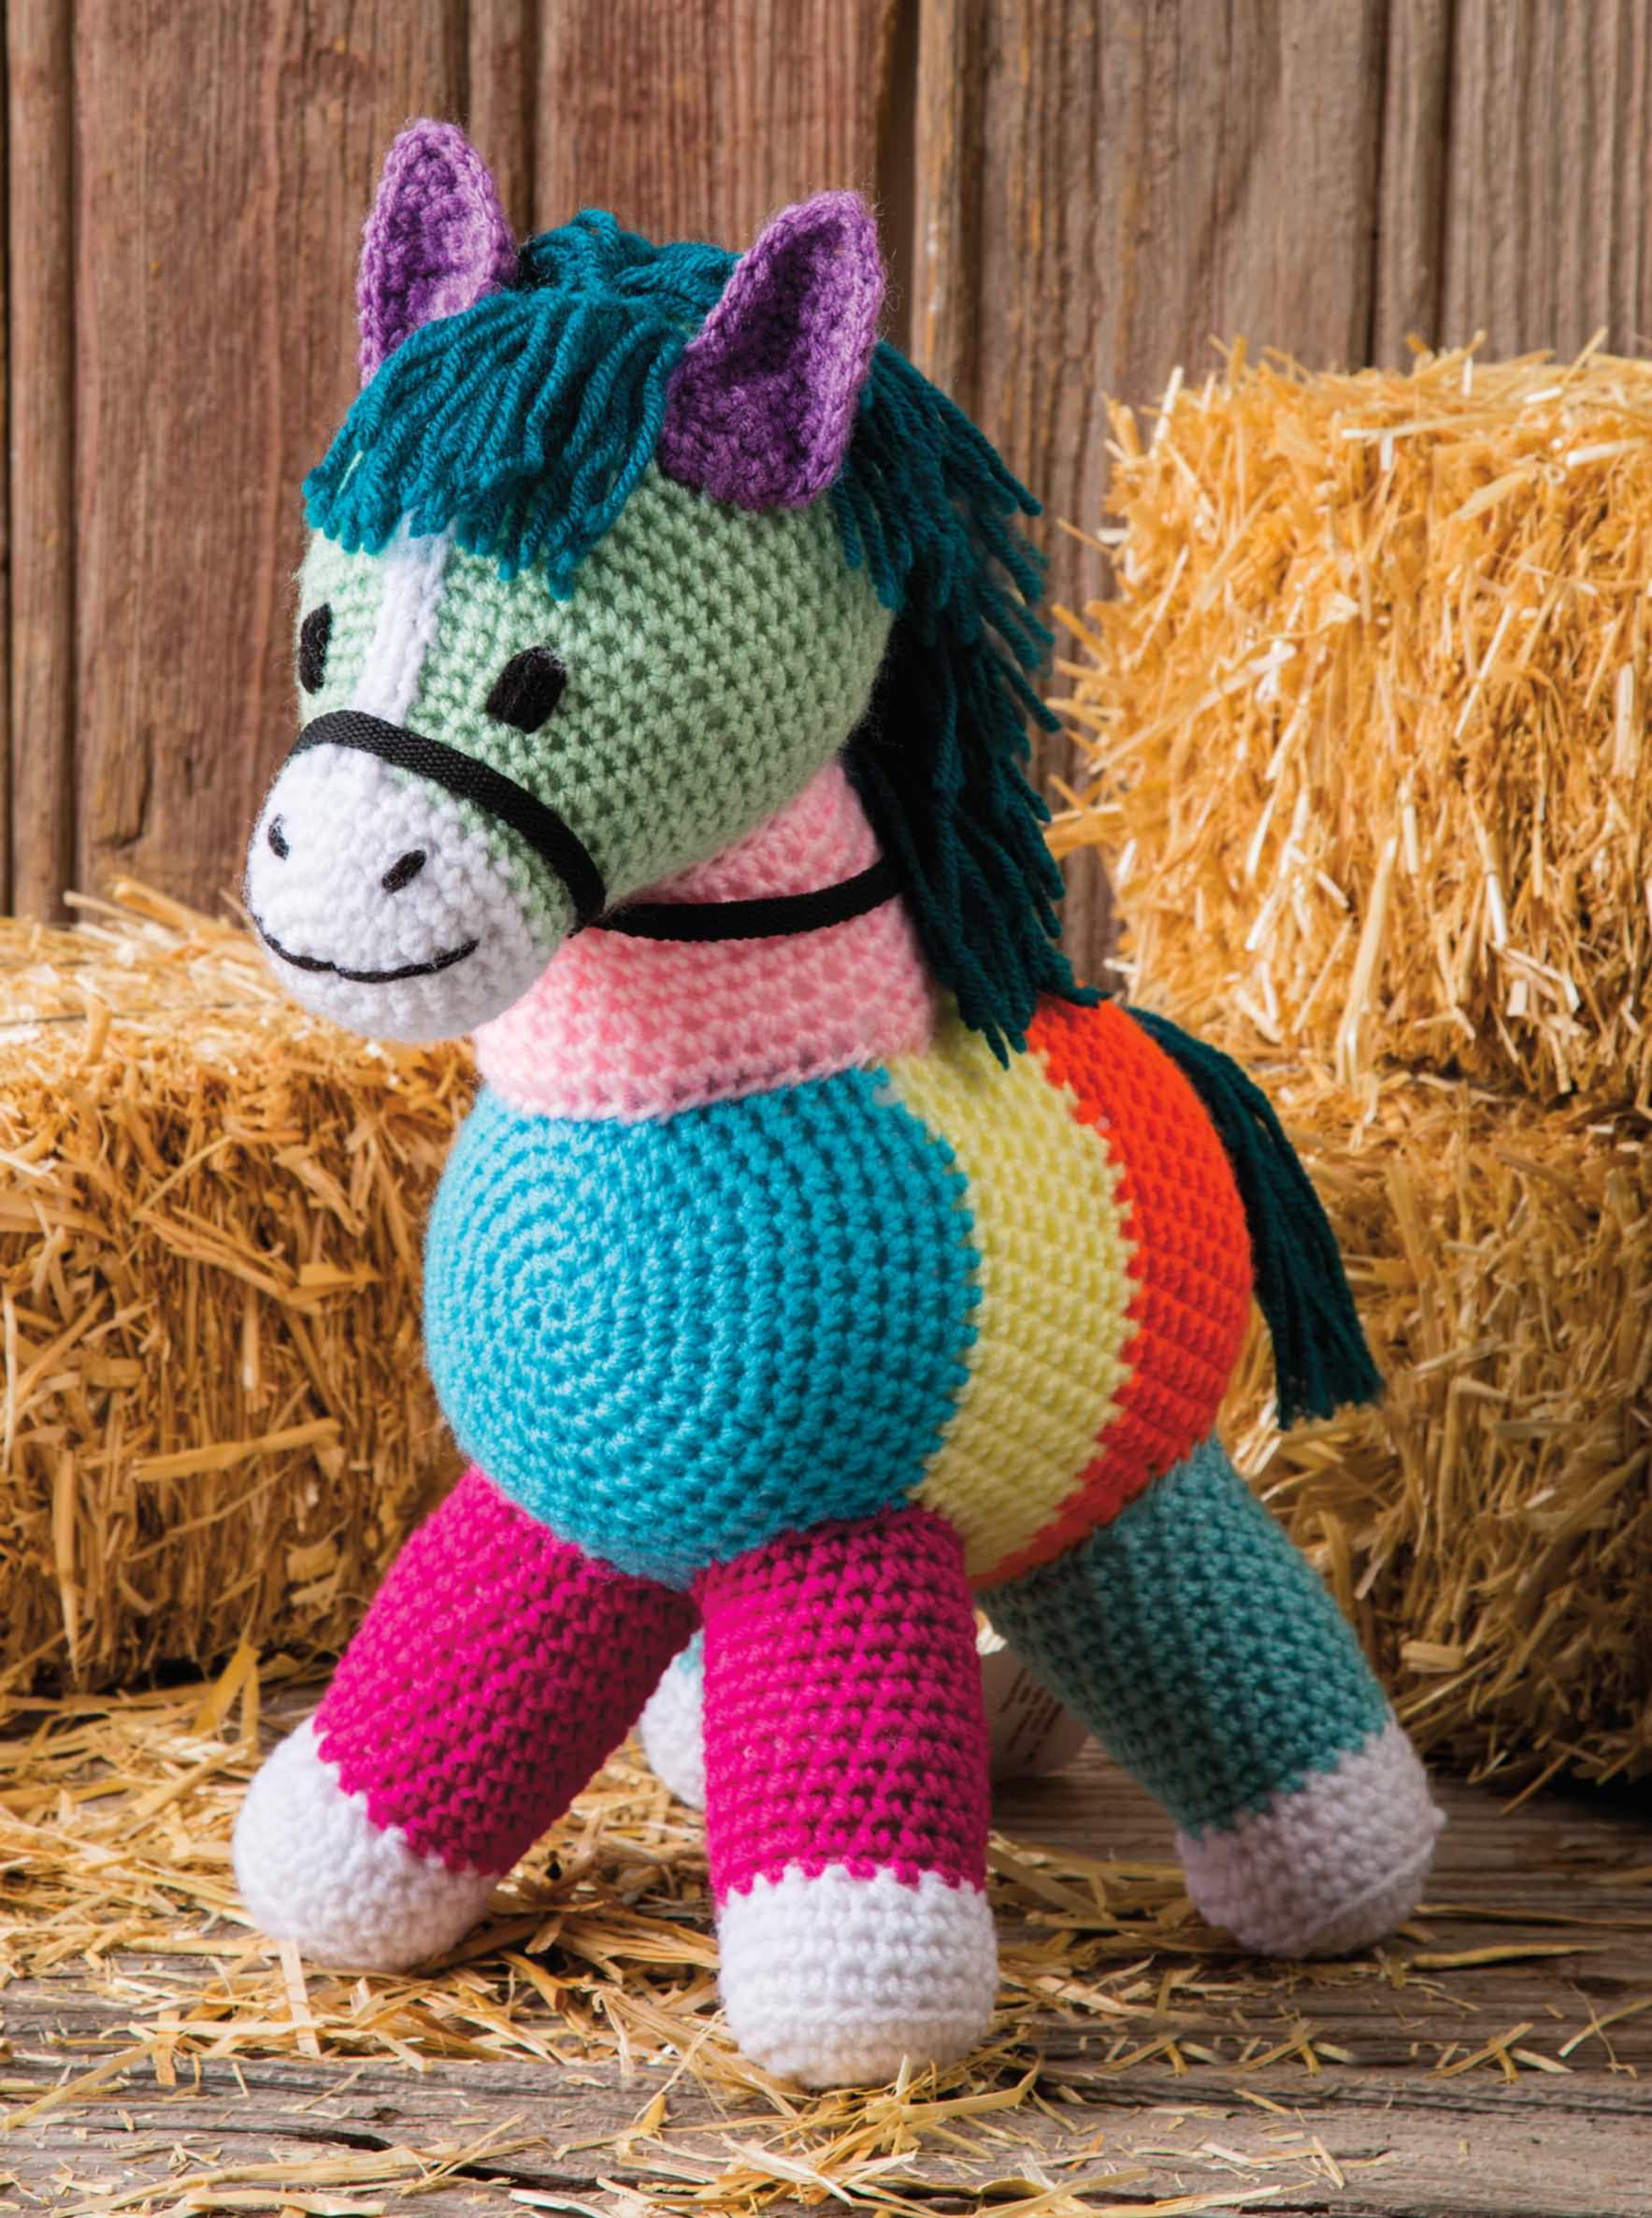 Sleeping unicorn pony crochet pattern - Amigurumi Today | 2372x1767